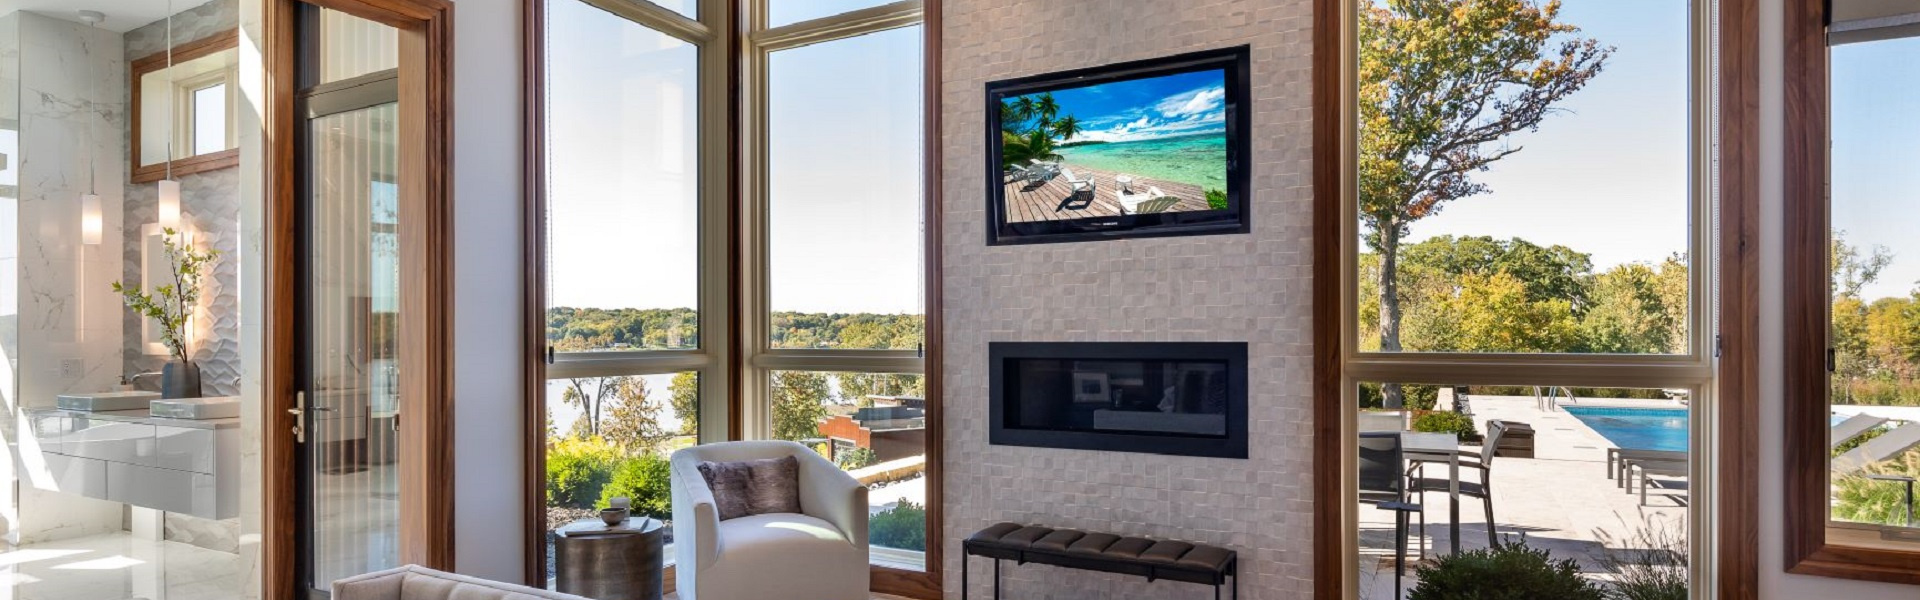 Smart home installation by Reference Audio Video & Security for Iowa City